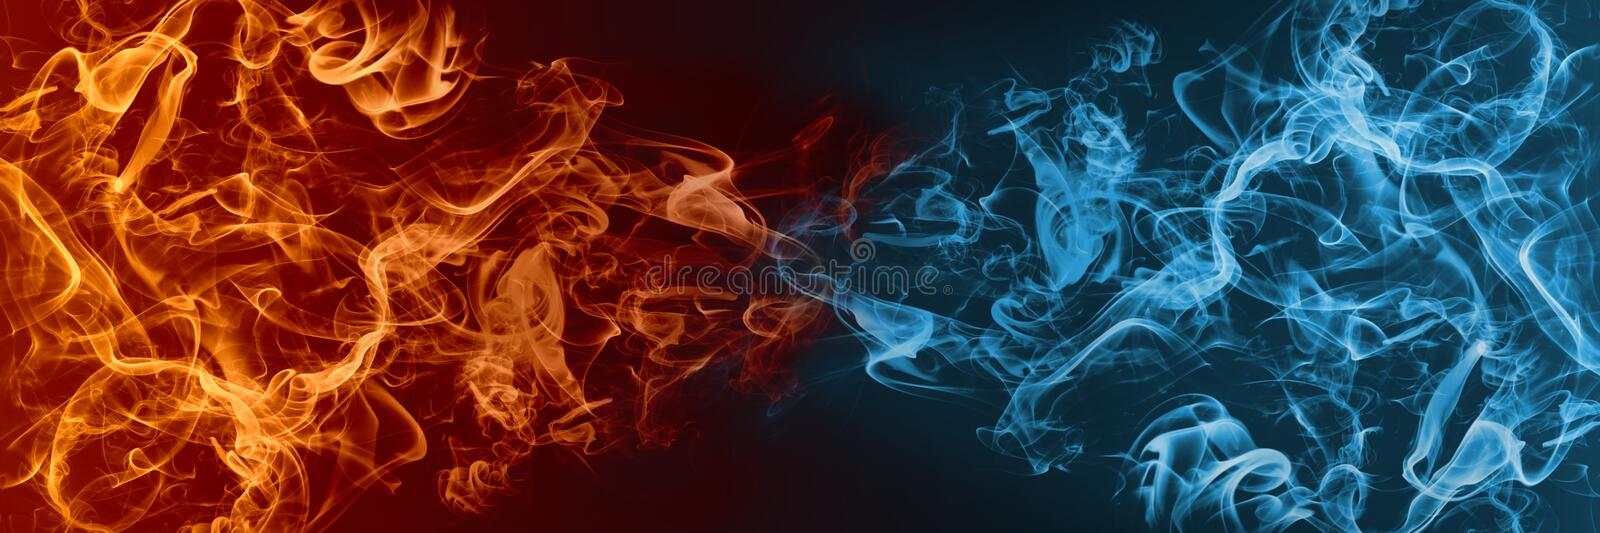 Abstract Fire and Ice element against vs each other background. Heat and Cold concept vector illustration